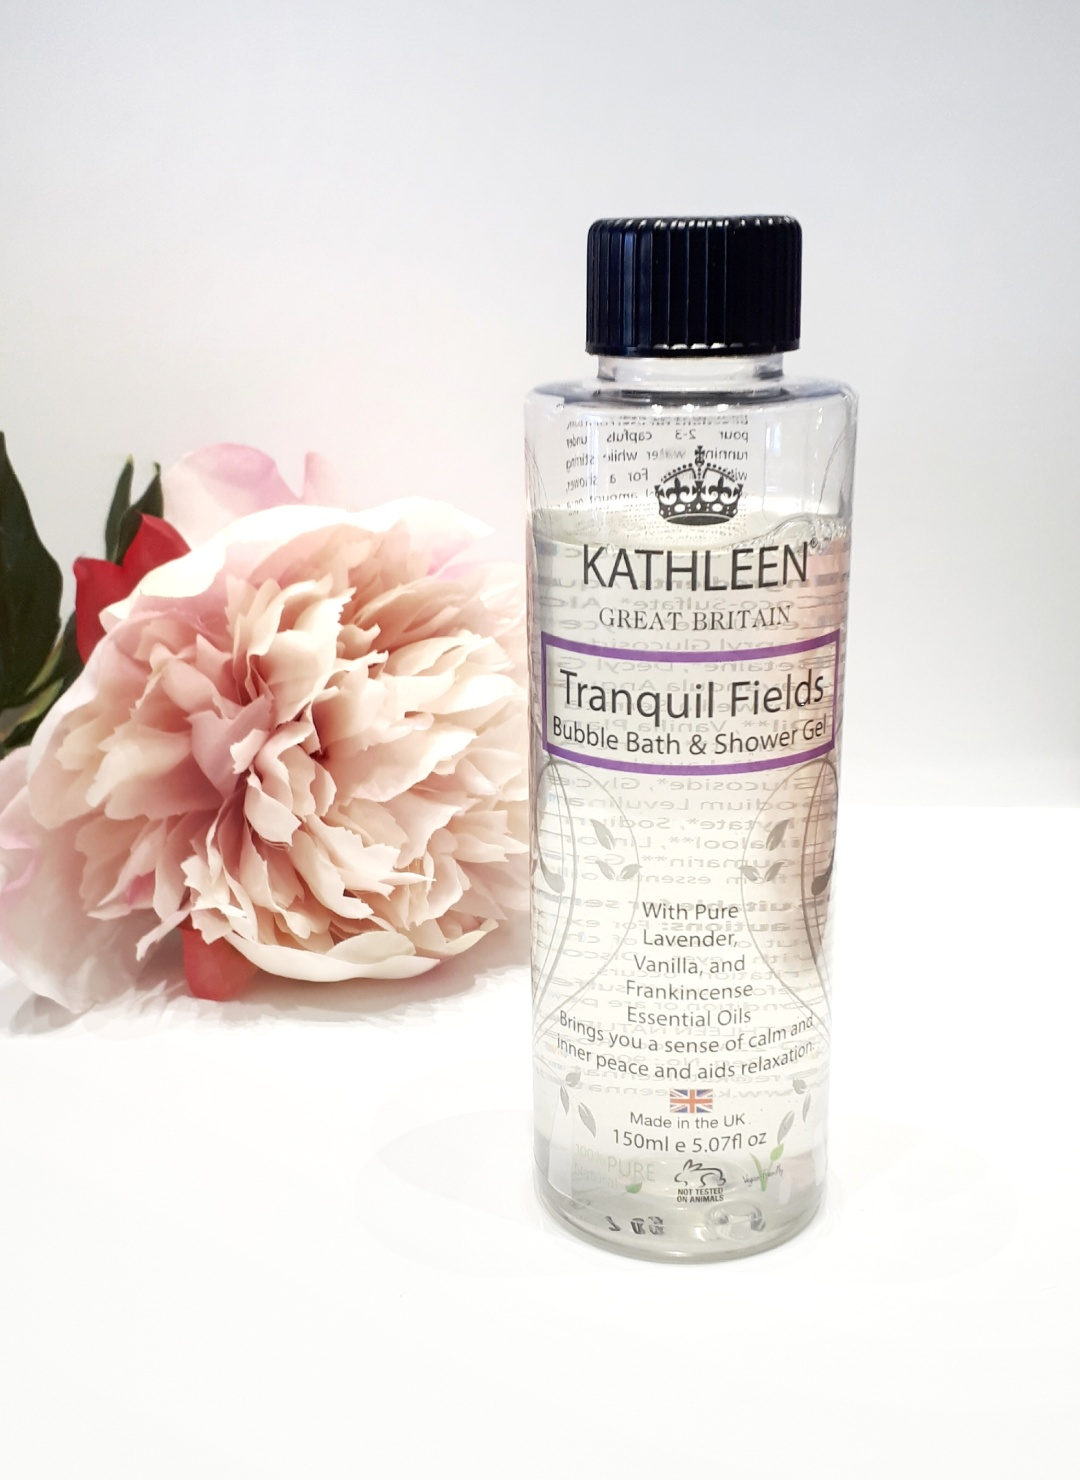 A clear bubble bath bottle stands on a white background next to a pink flower. The bottle has a black cap, with black writing.